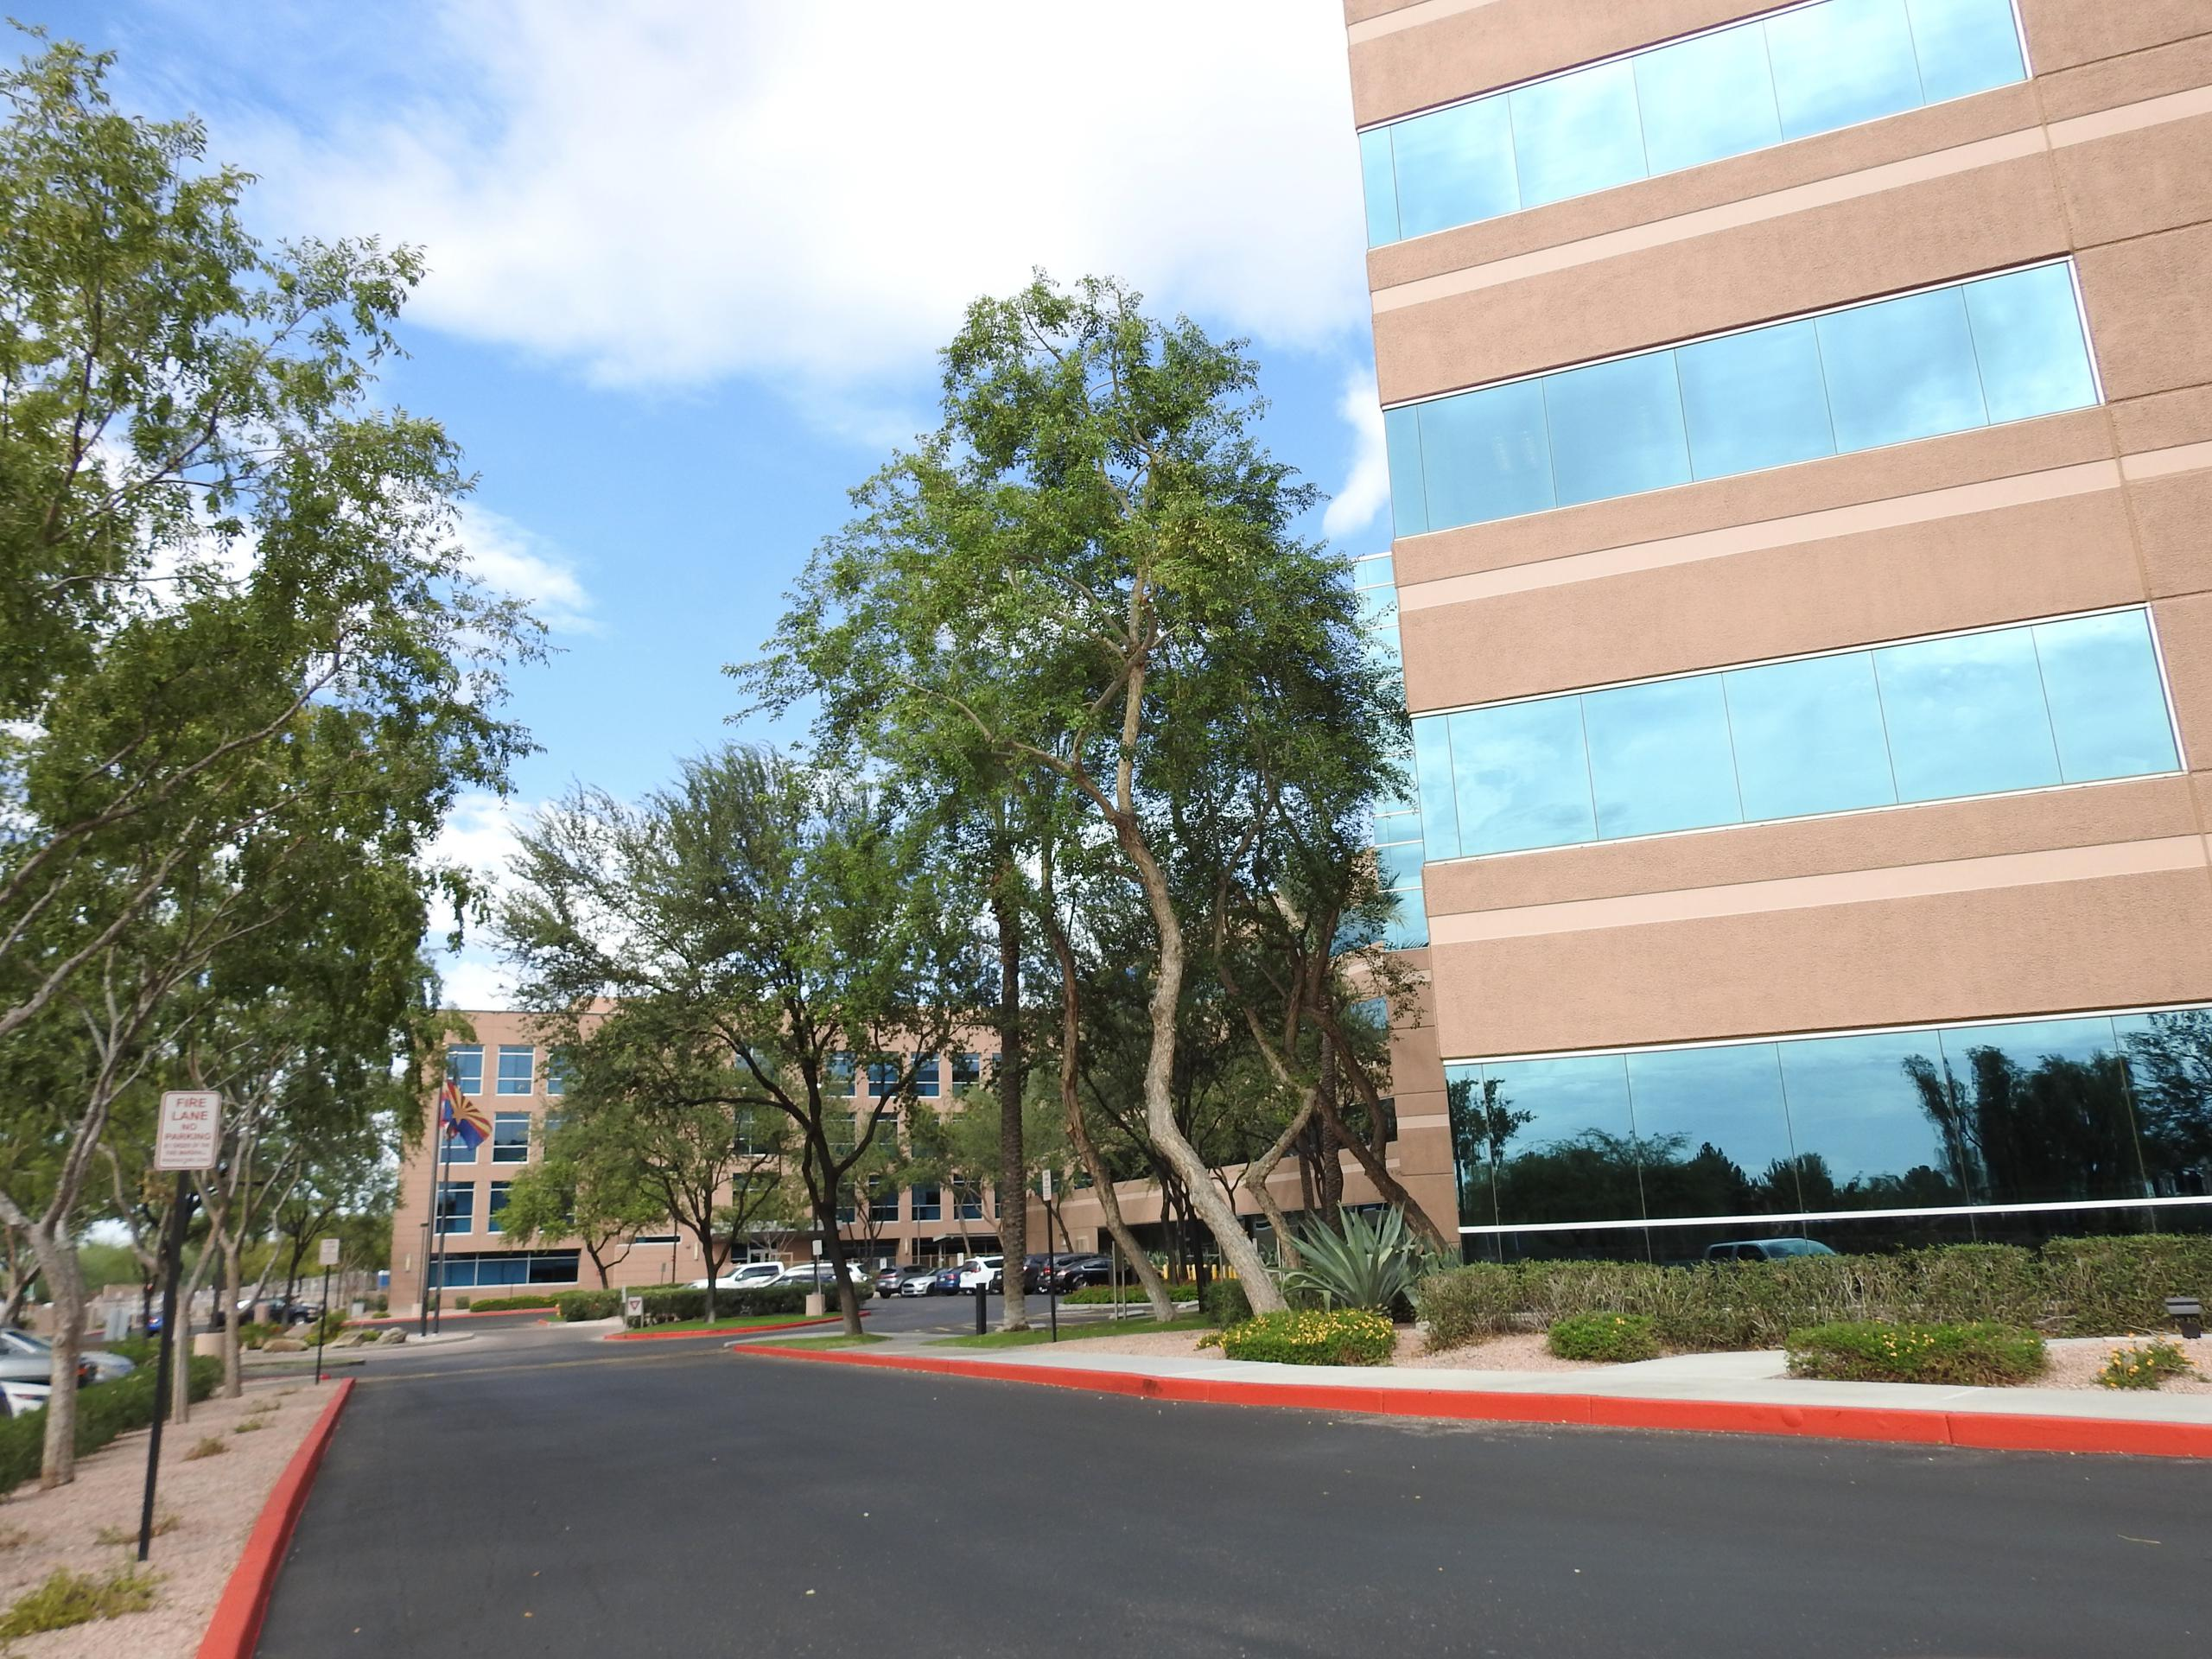 PetSmart's corporate headquarters in Phoenix, Arizona.